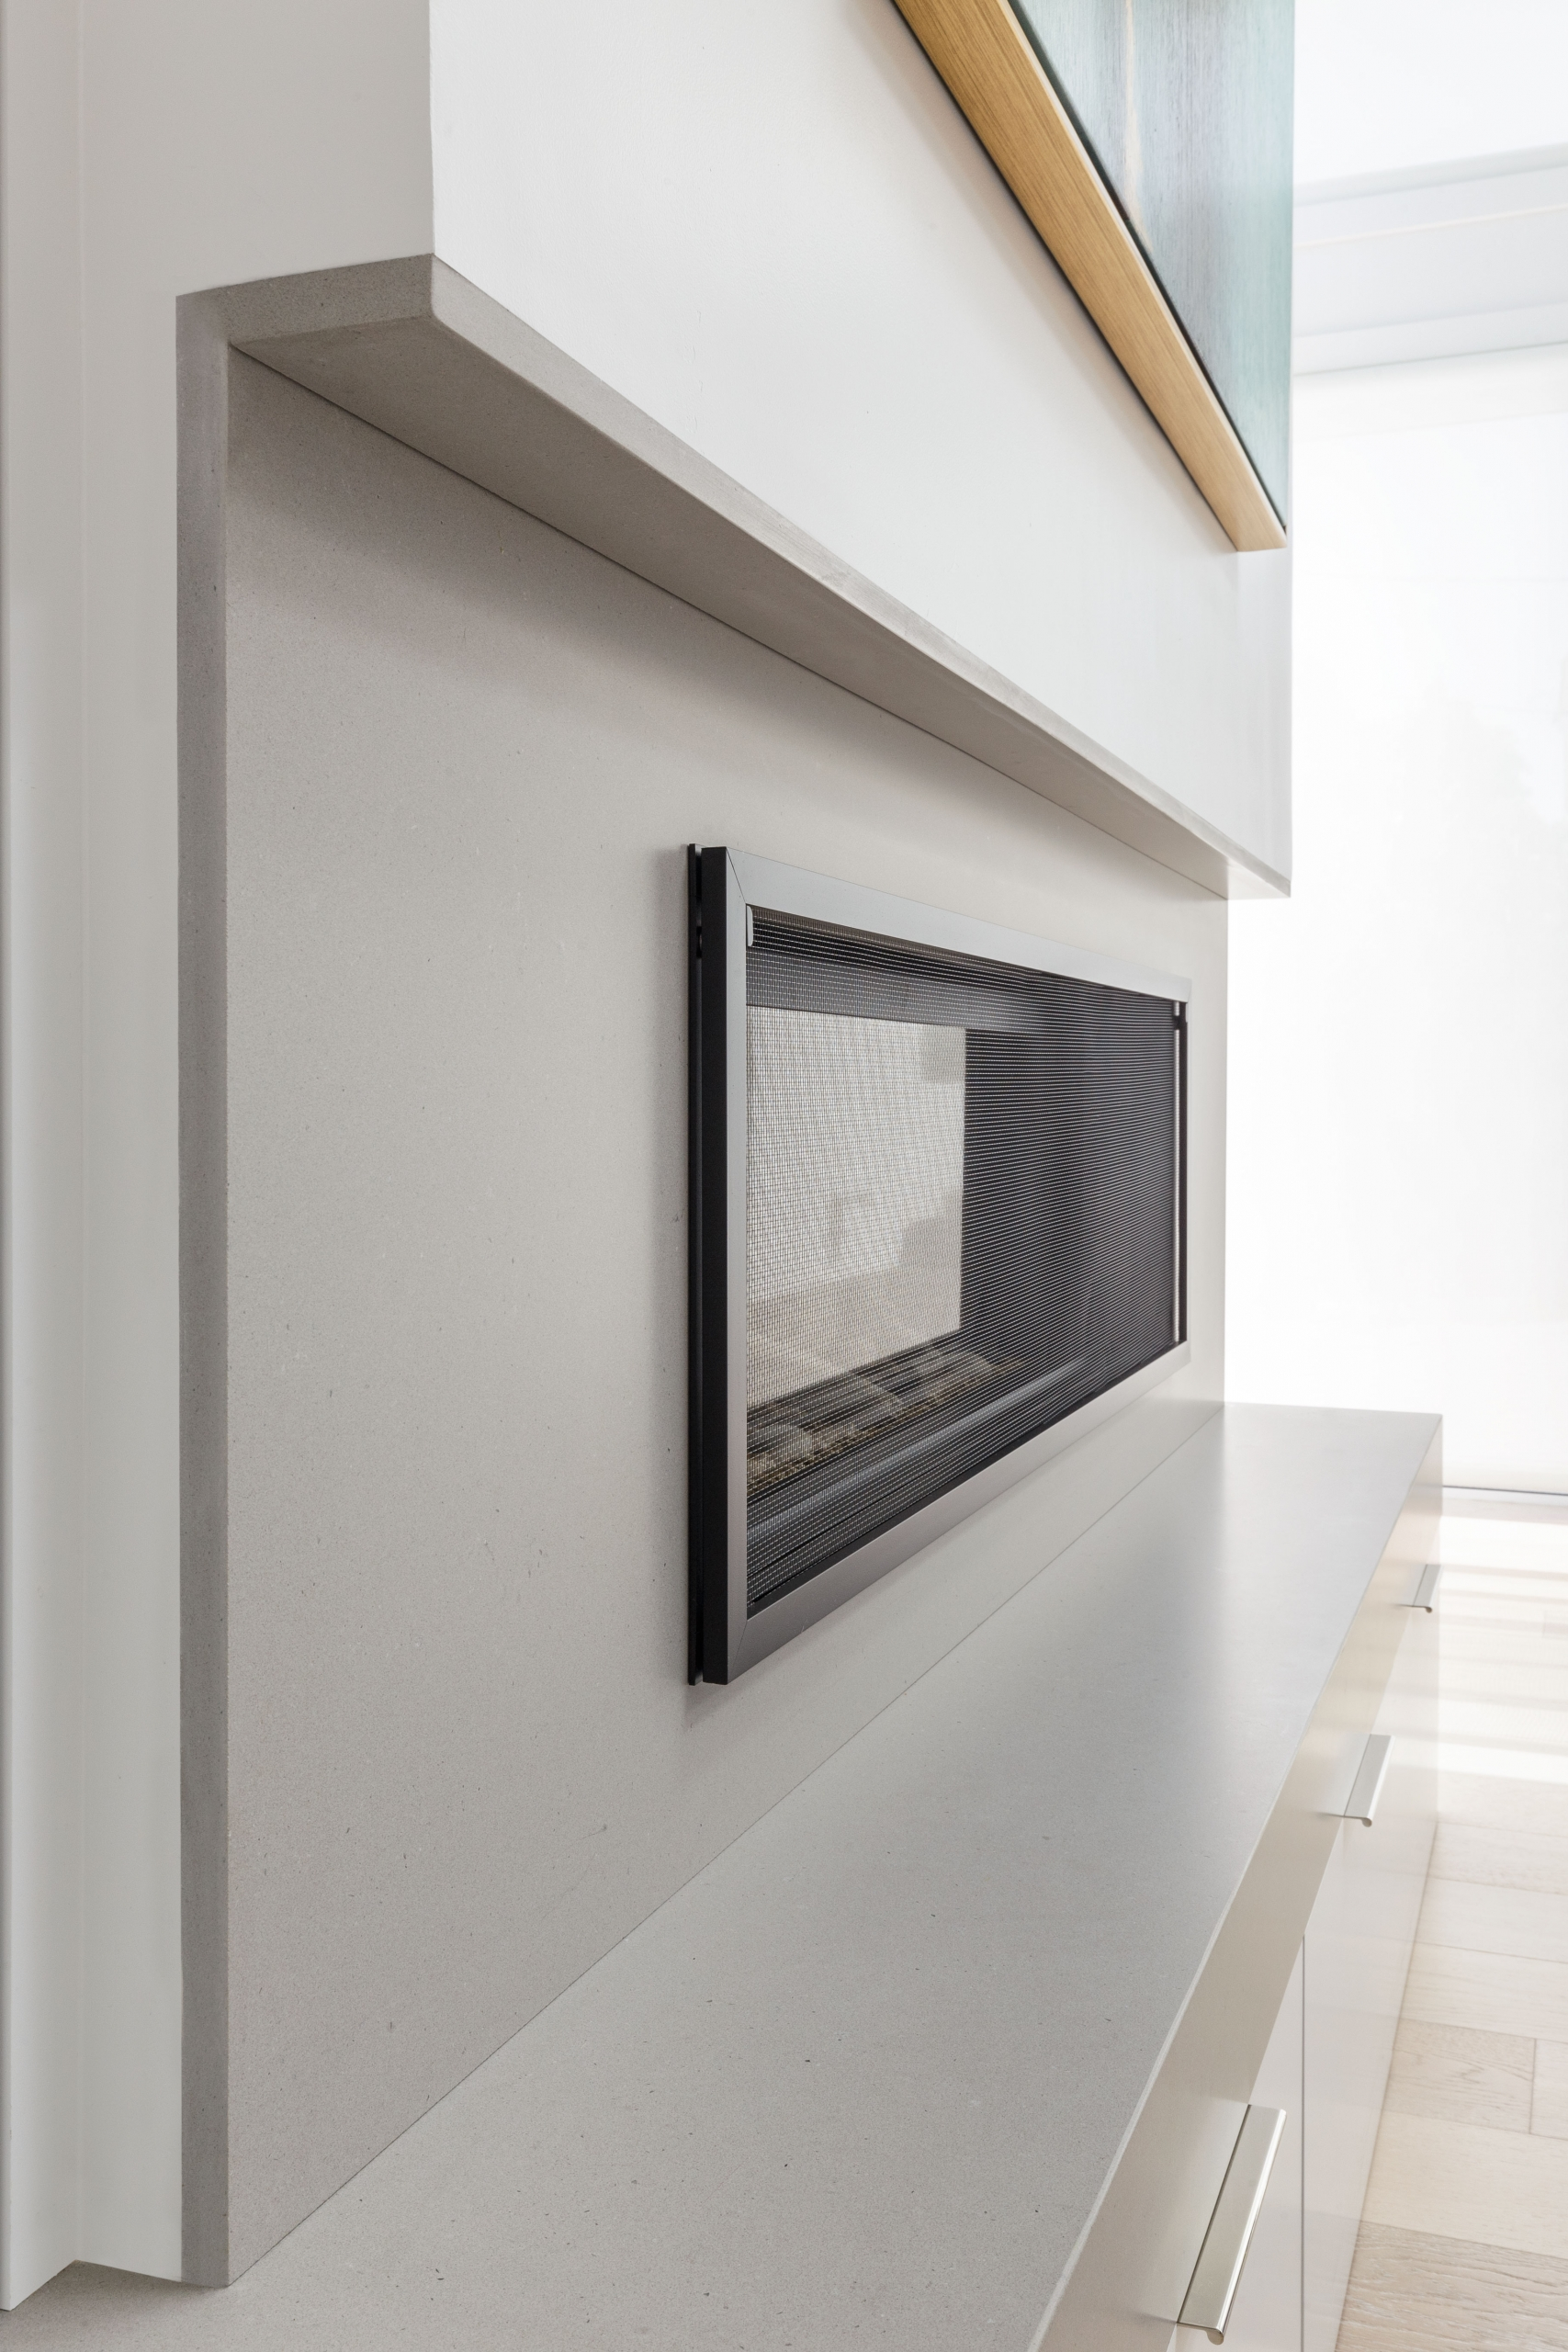 Contemporary fireplace designed by Sarahliz Lawson as seen on Houzz